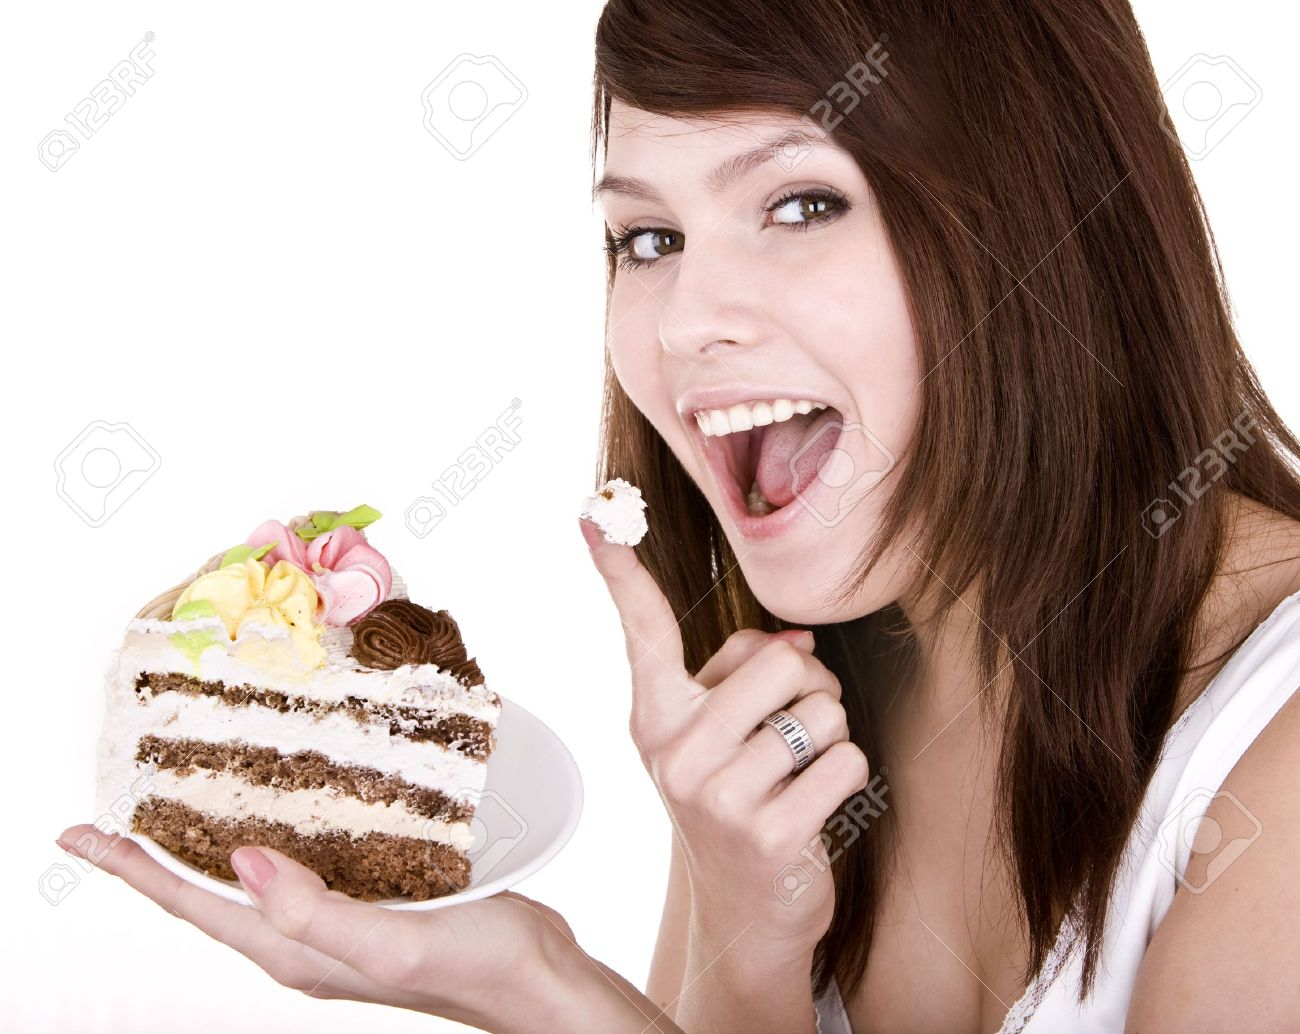 Girl eating piece of cake. Isolated. Stock Photo - 4893275